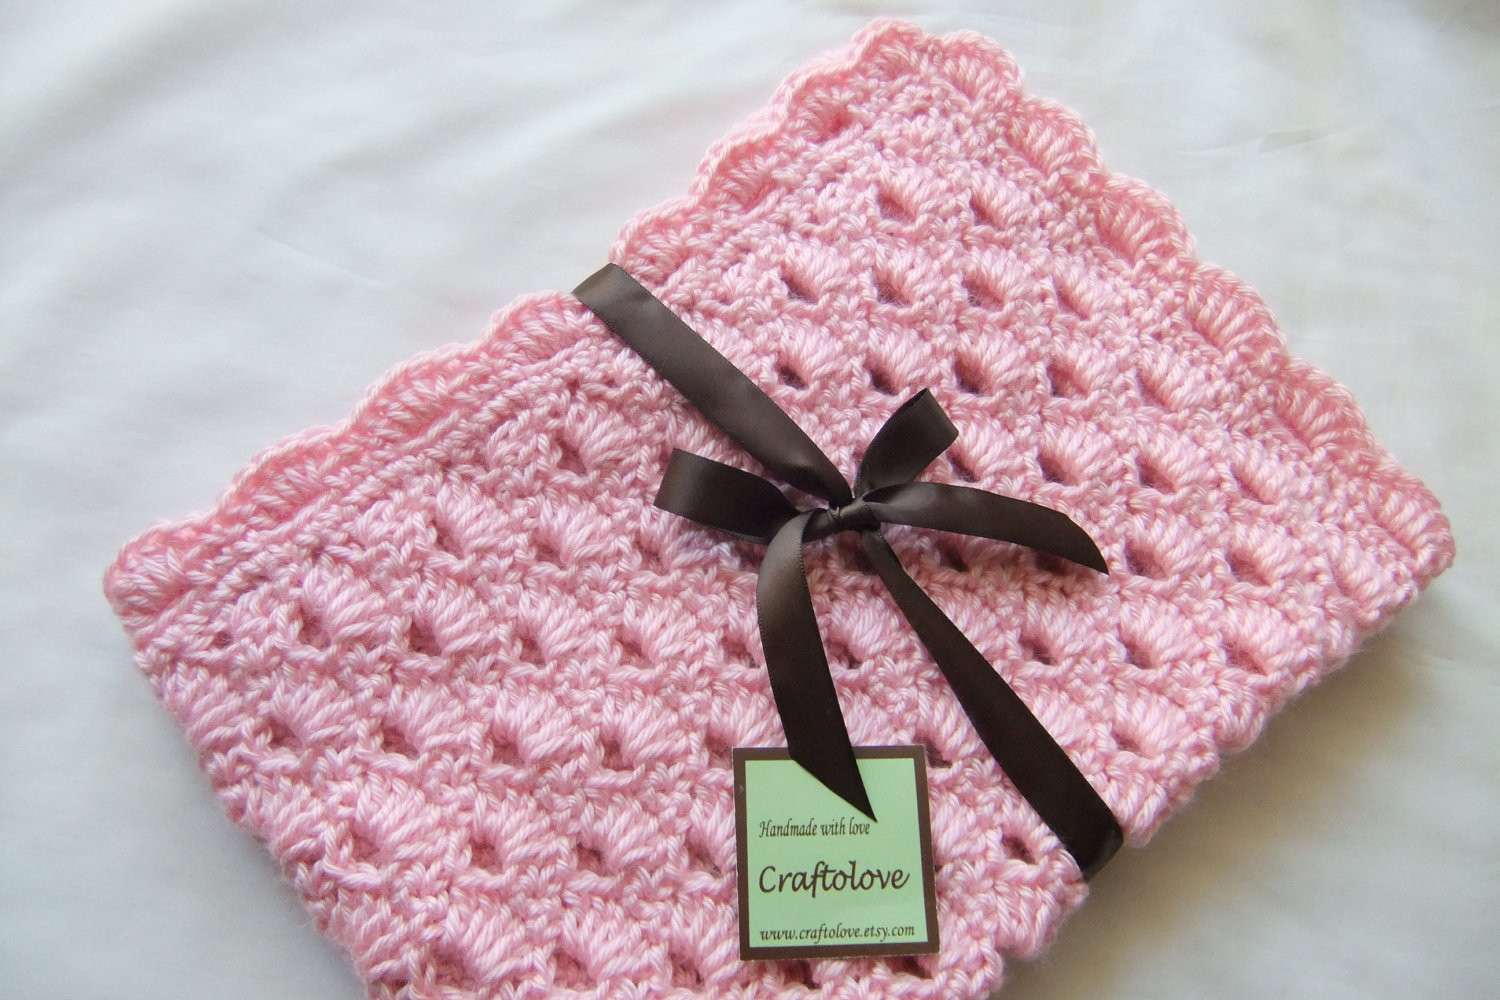 Baby Girl Crochet Blanket Patterns Lovely Baby Girl Blanket Crochet Baby Blanket Pink Arch Shells Of Unique 41 Photos Baby Girl Crochet Blanket Patterns